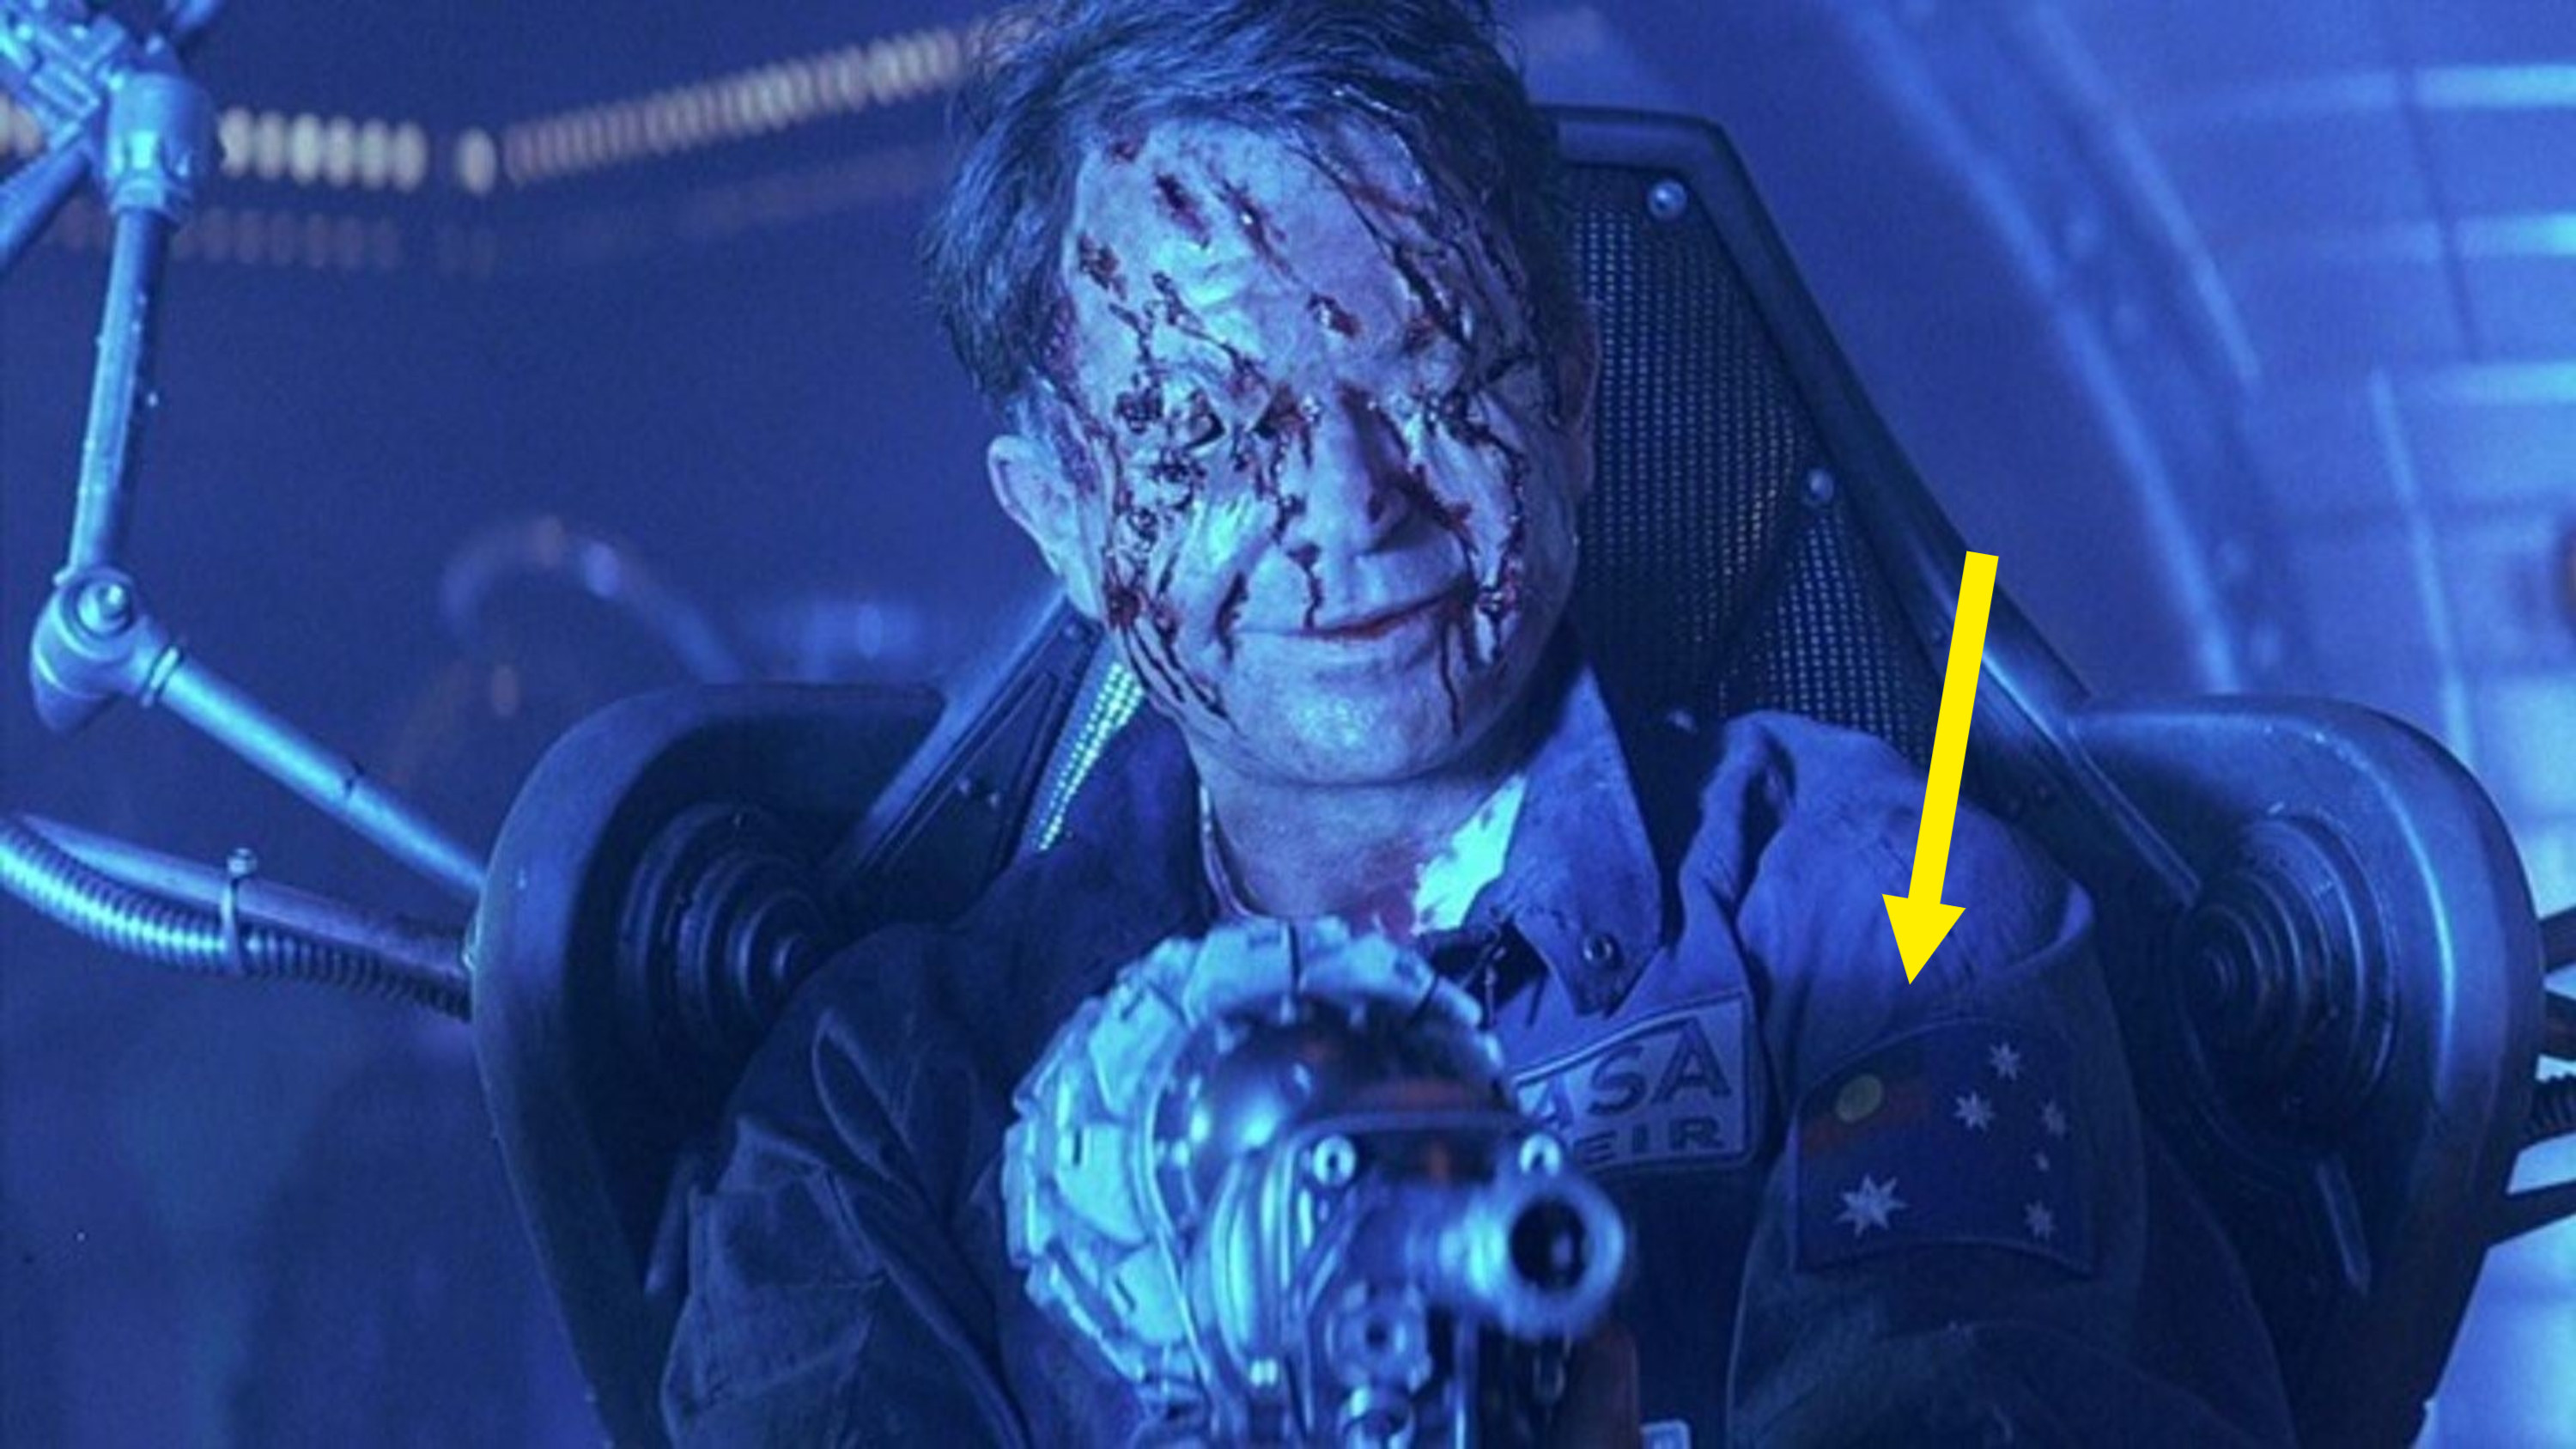 """Sam Neill's character in """"Event Horizon"""" holding a gun. You can see the Aboriginal flag on his uniform"""